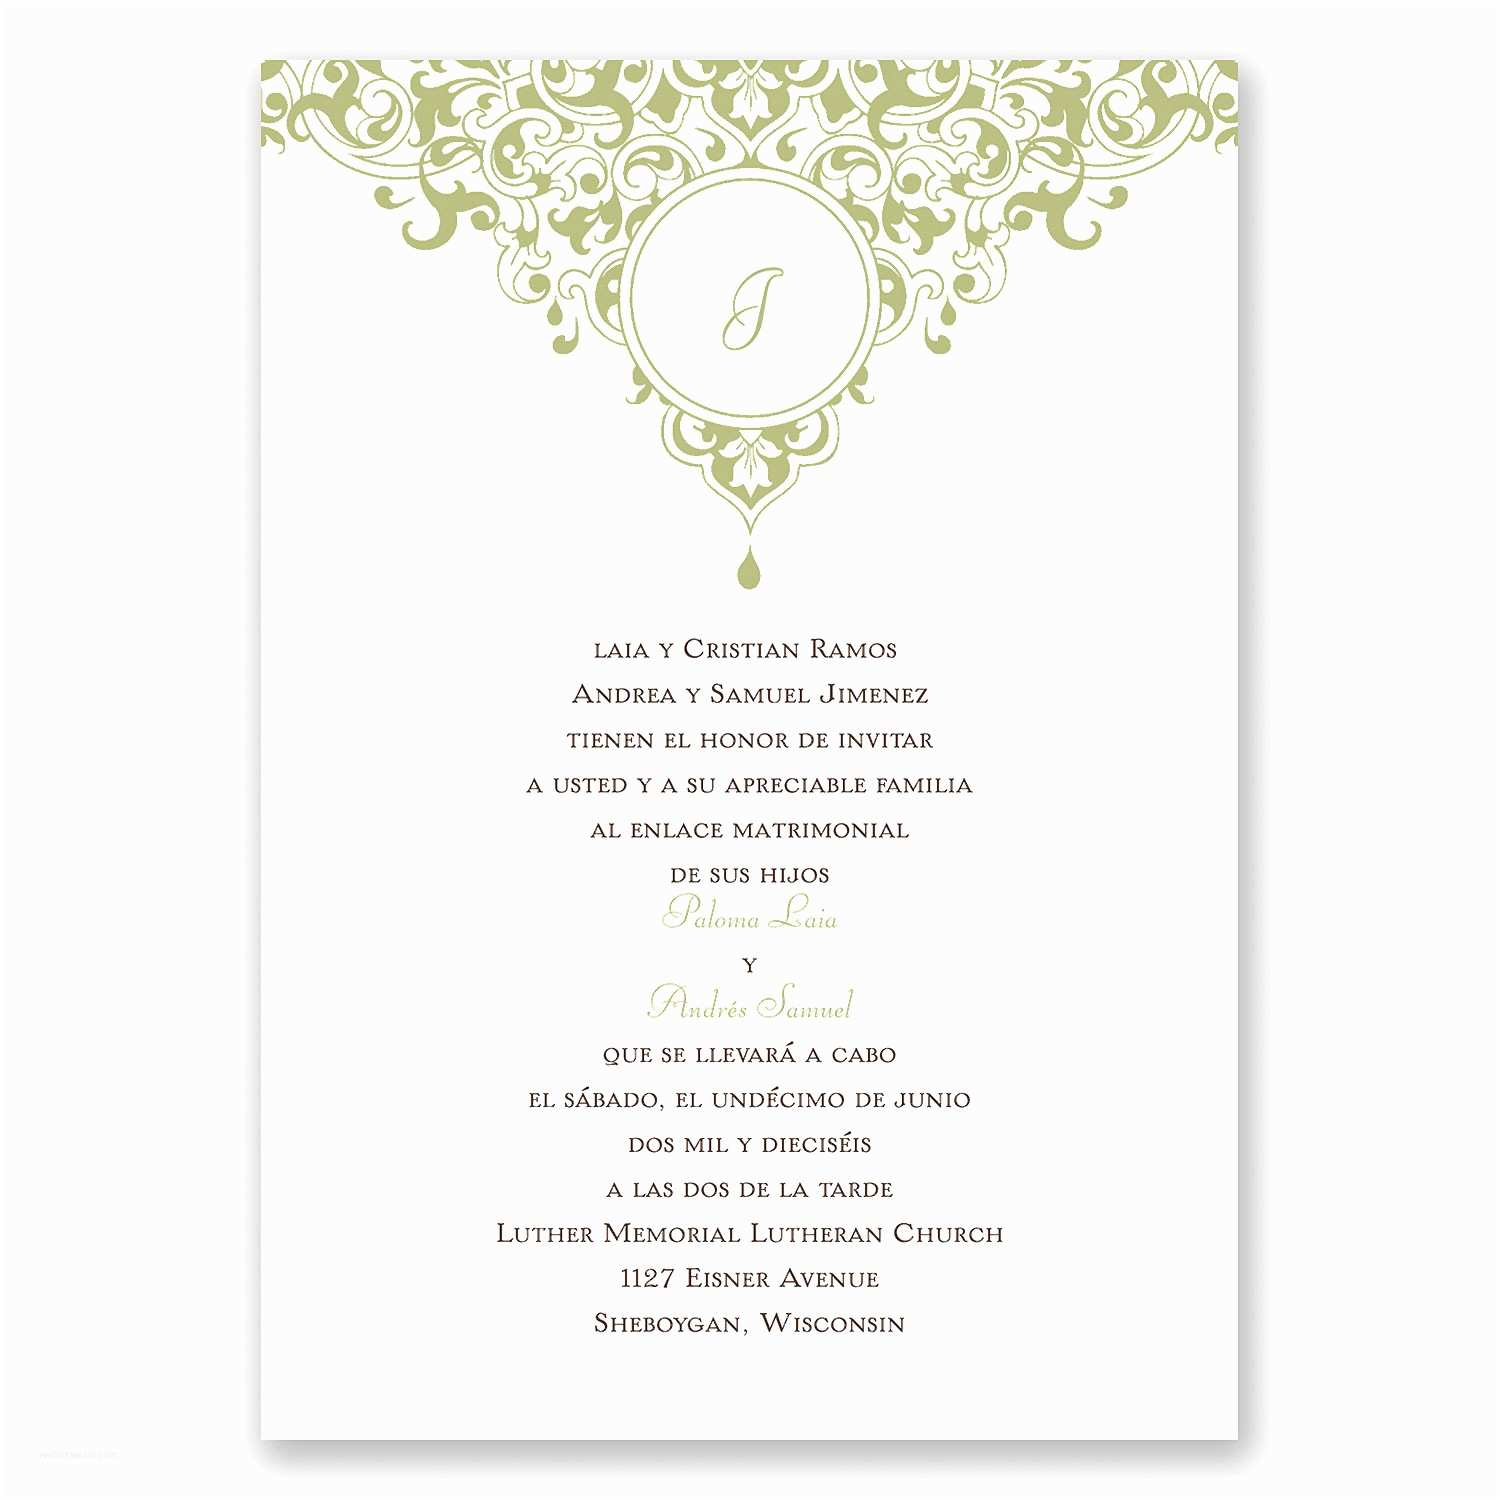 Catholic Wedding Invitation Wording In Spanish